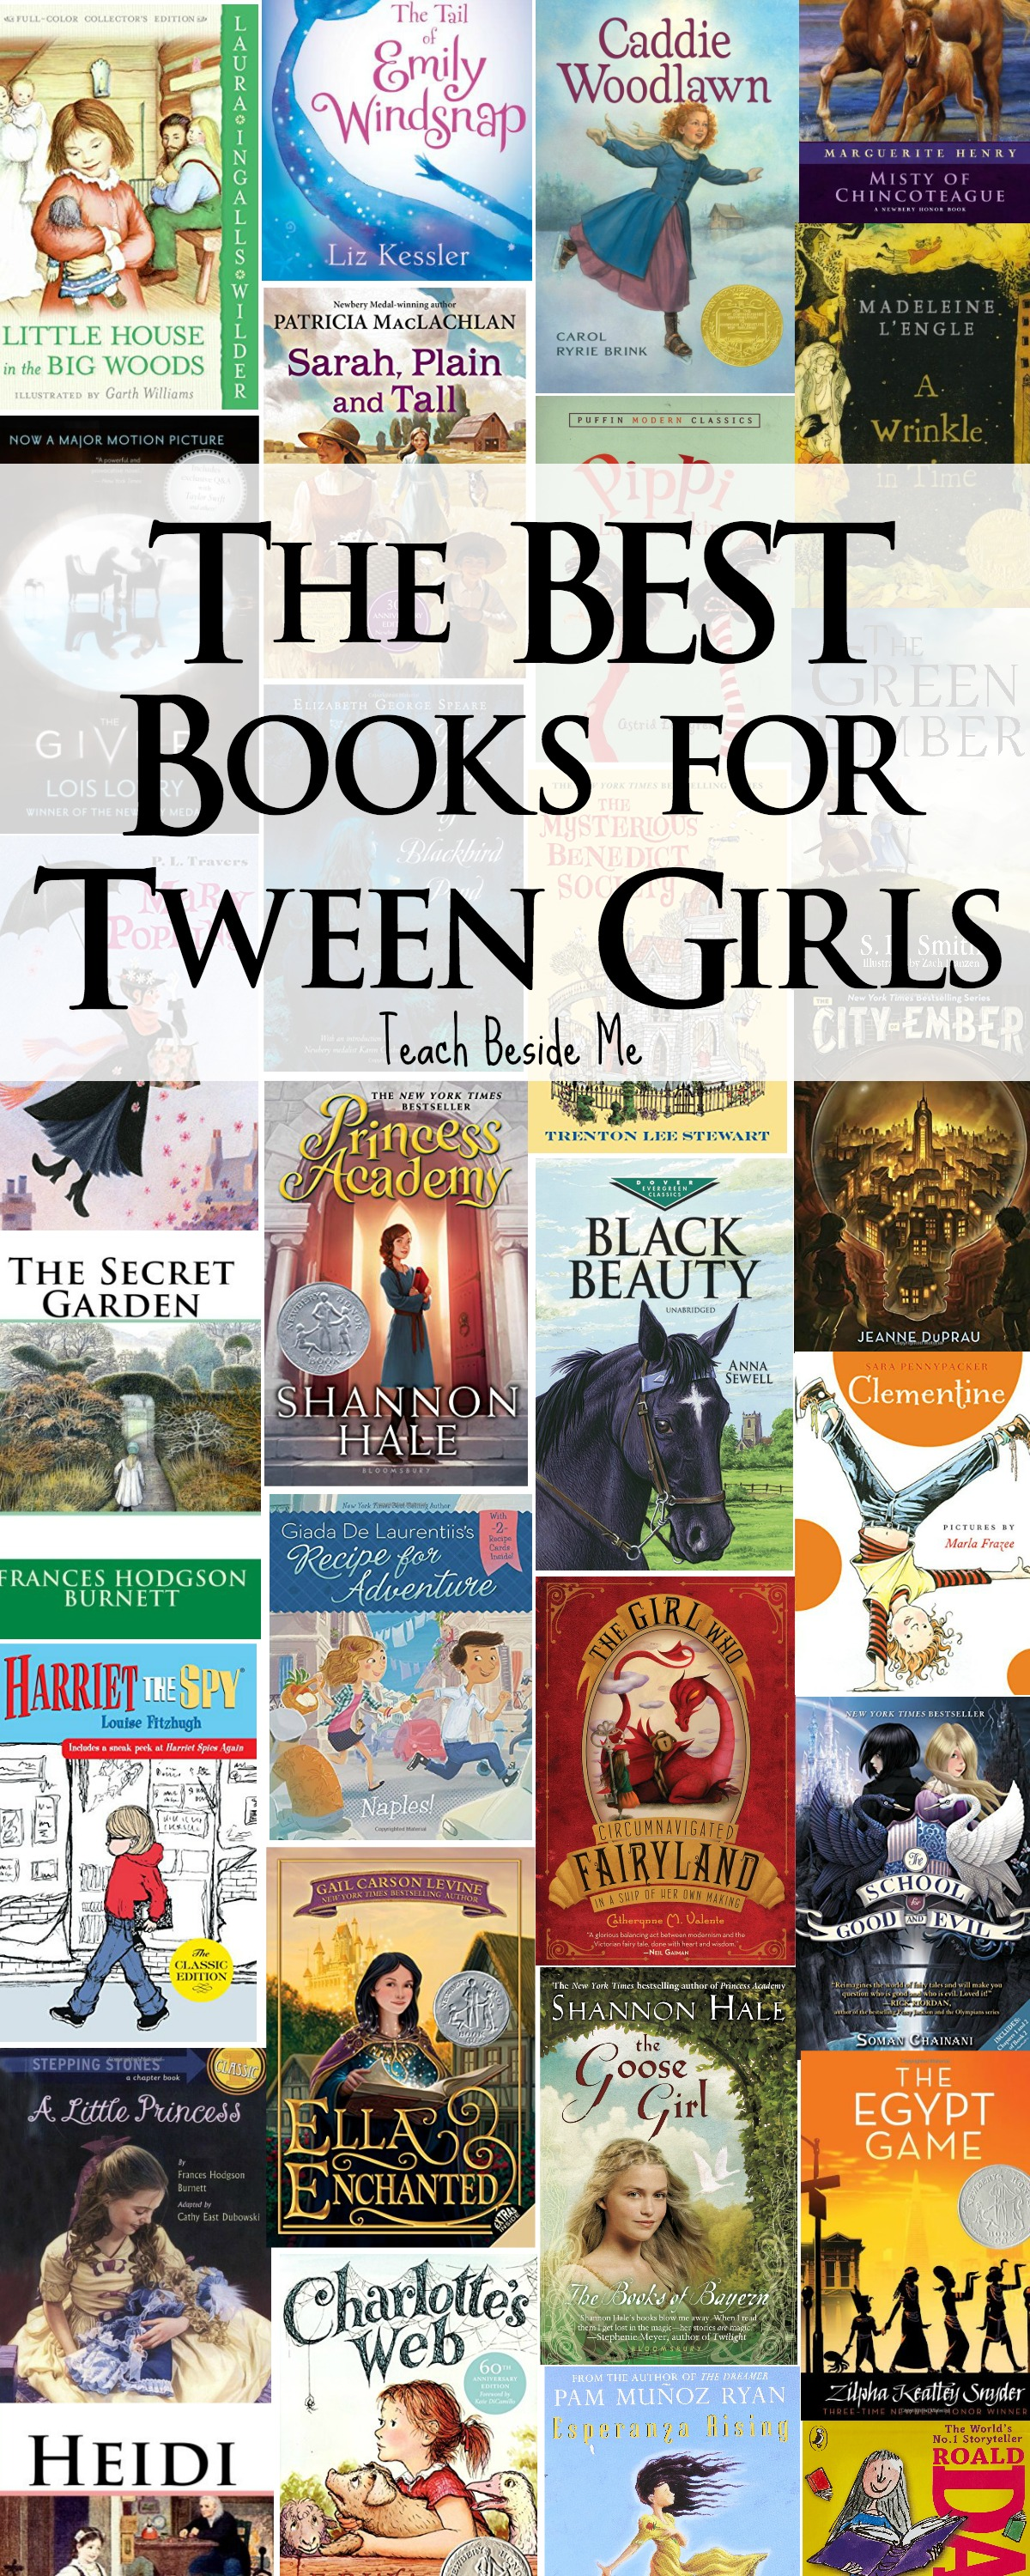 The Best Of The Worst: Best Books For Tween Girls